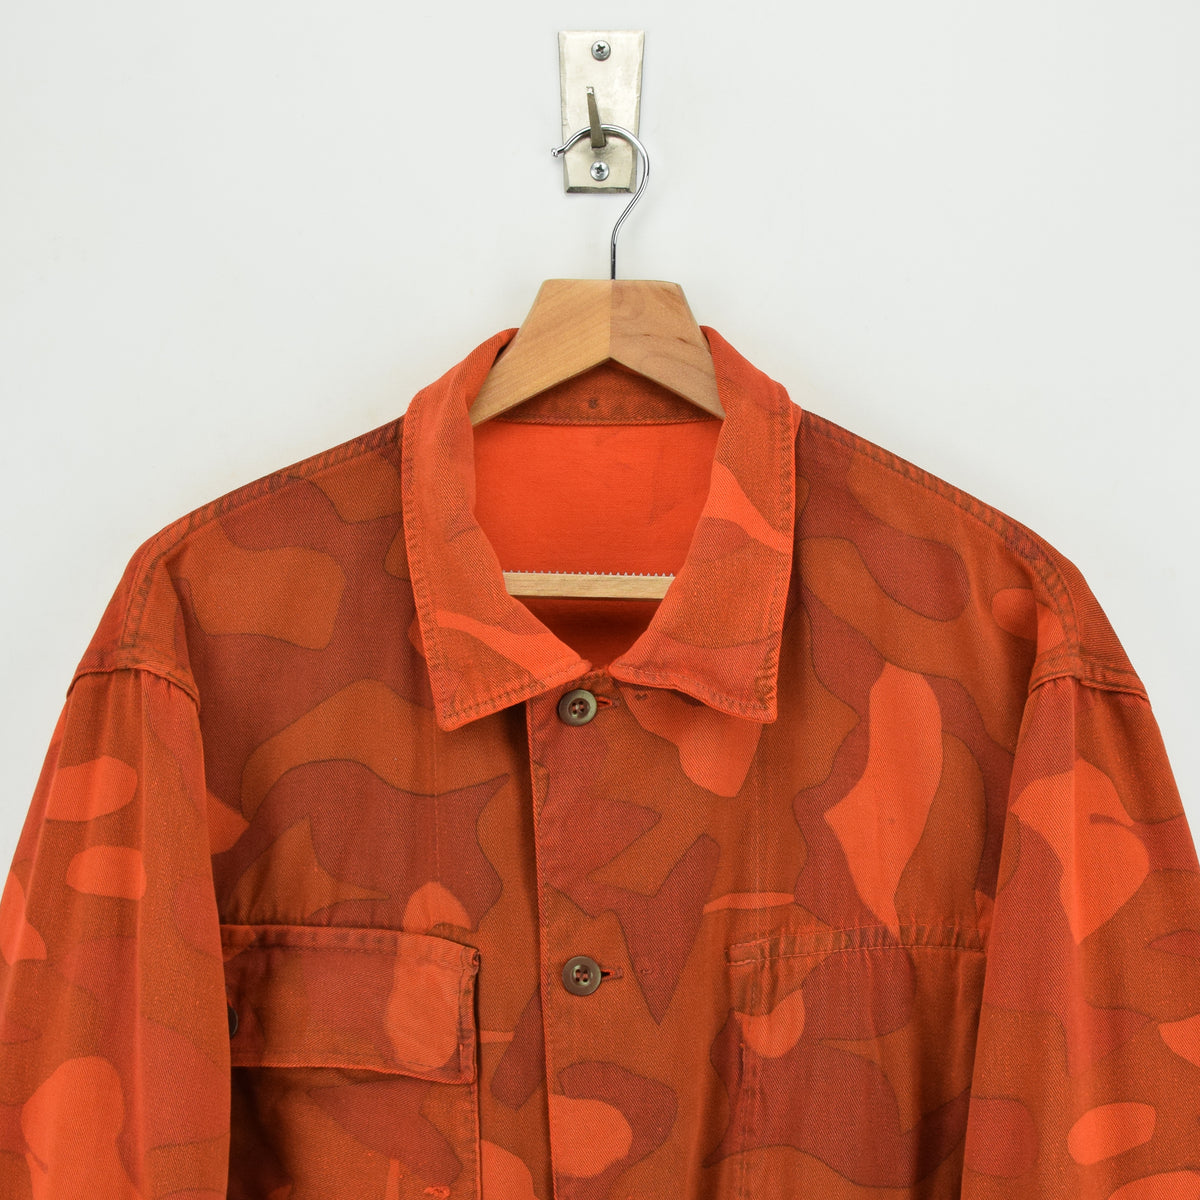 Vintage 70s Military Finnish Army Orange Overdyed Camo Mountain Field Jacket XL chest